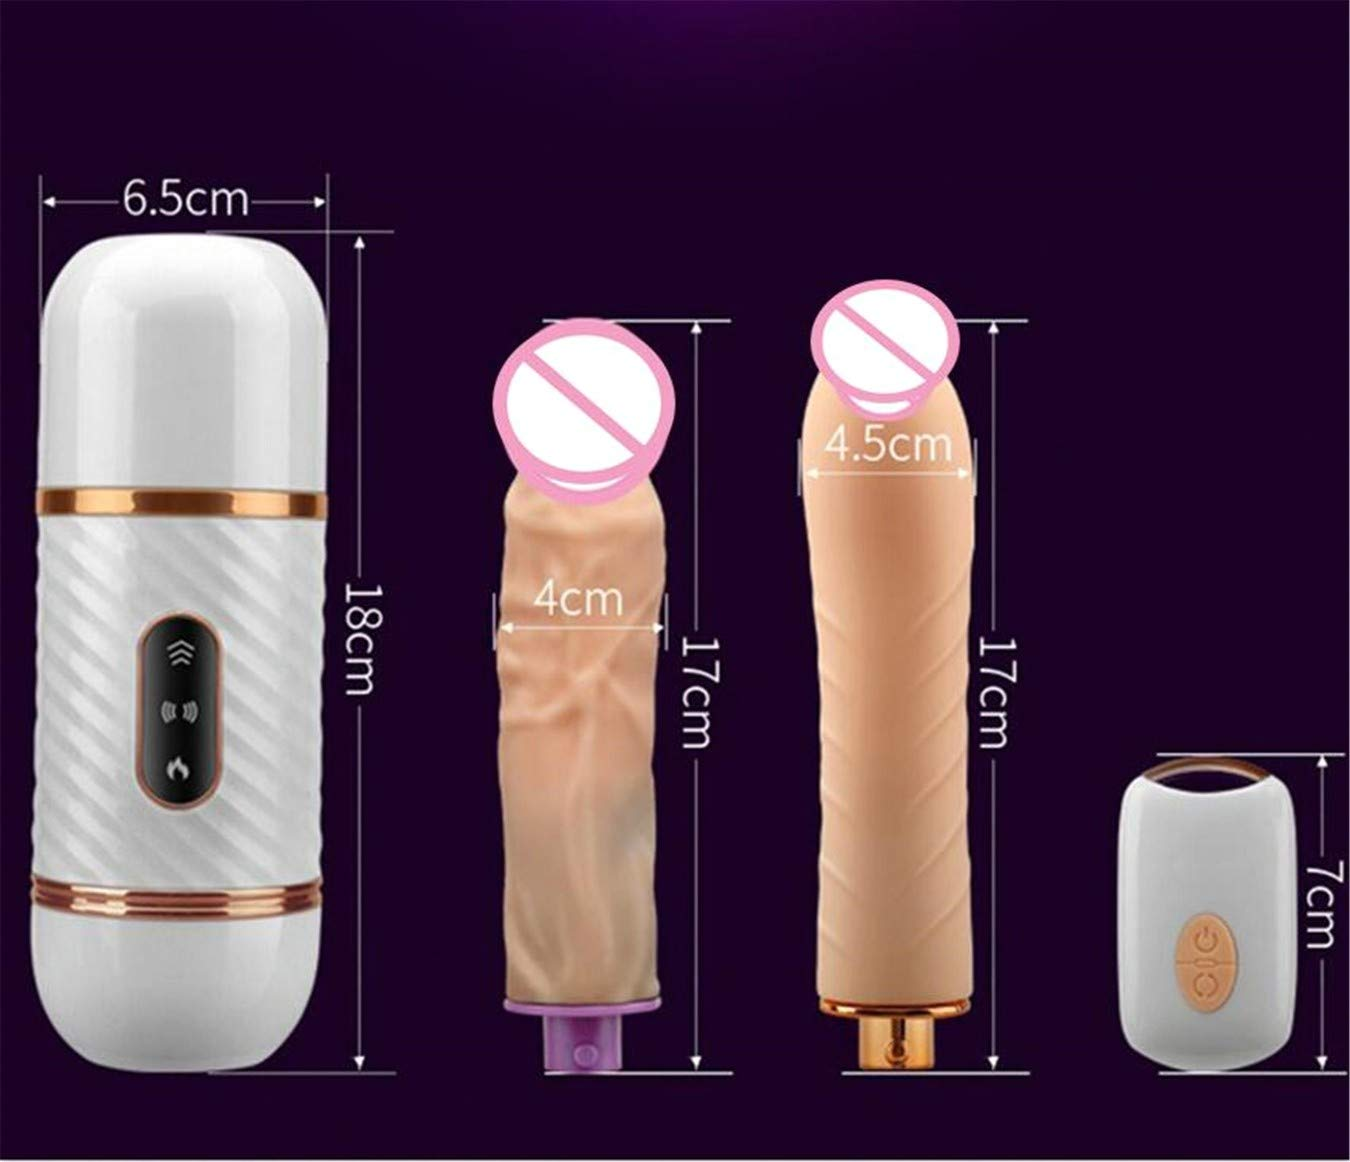 Sex Dildo Vibrator Telescopic Vibrating Dildo for Adult Silicone Vibrator Anal Vagina Stimulator Sex Machine Remote Control Vibrator Magic Massager for Women with Two Dildos